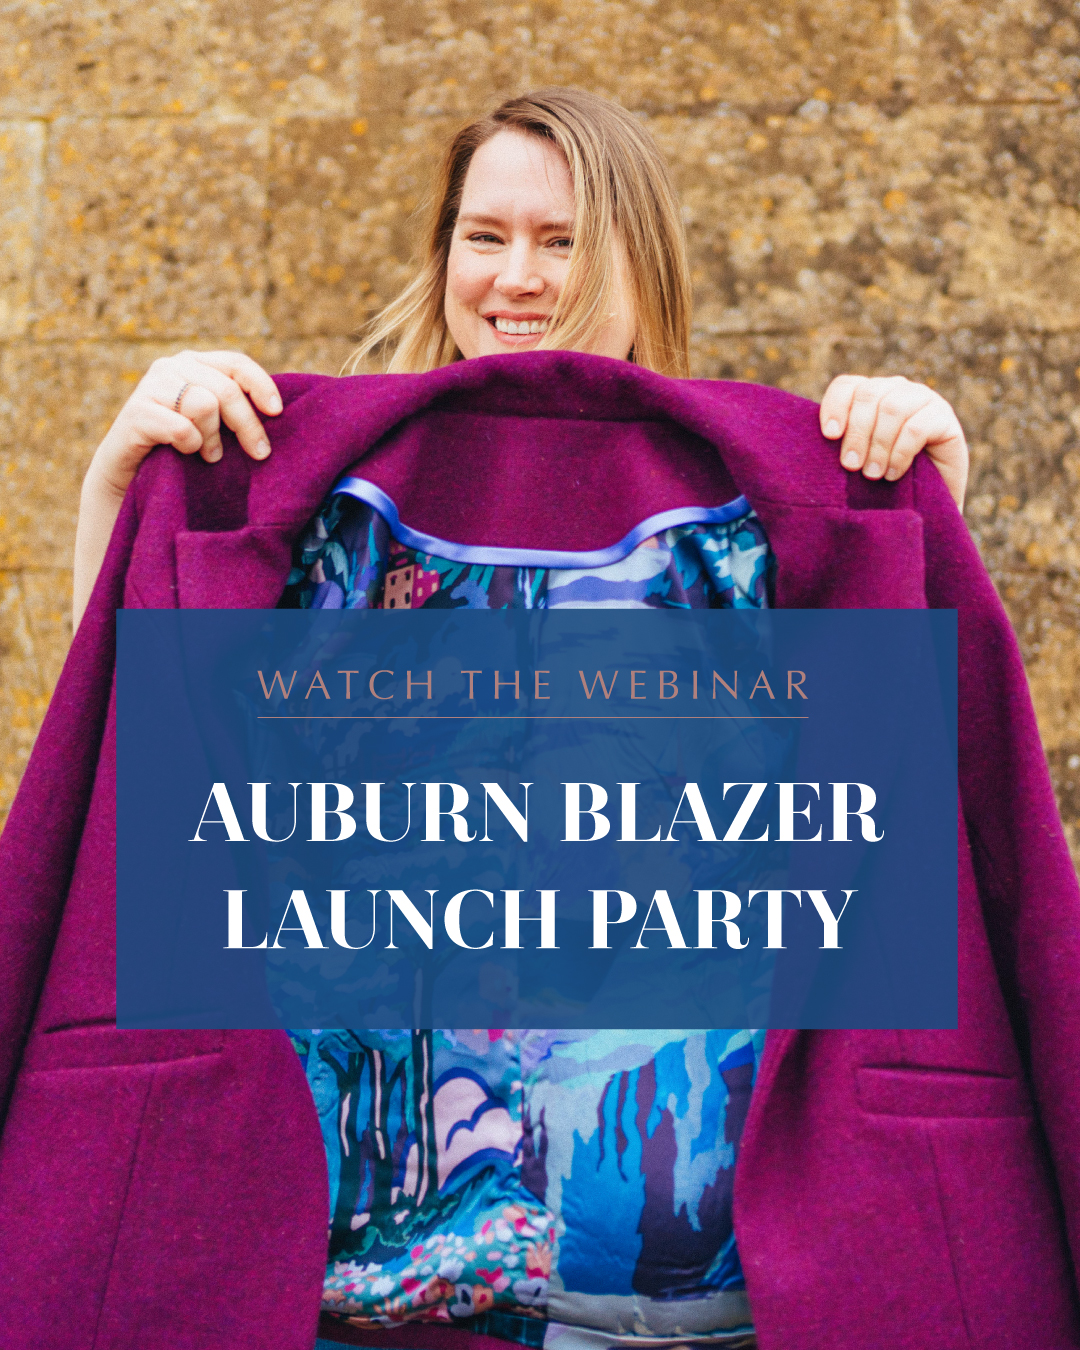 Watch the webinar: auburn blazer launch party